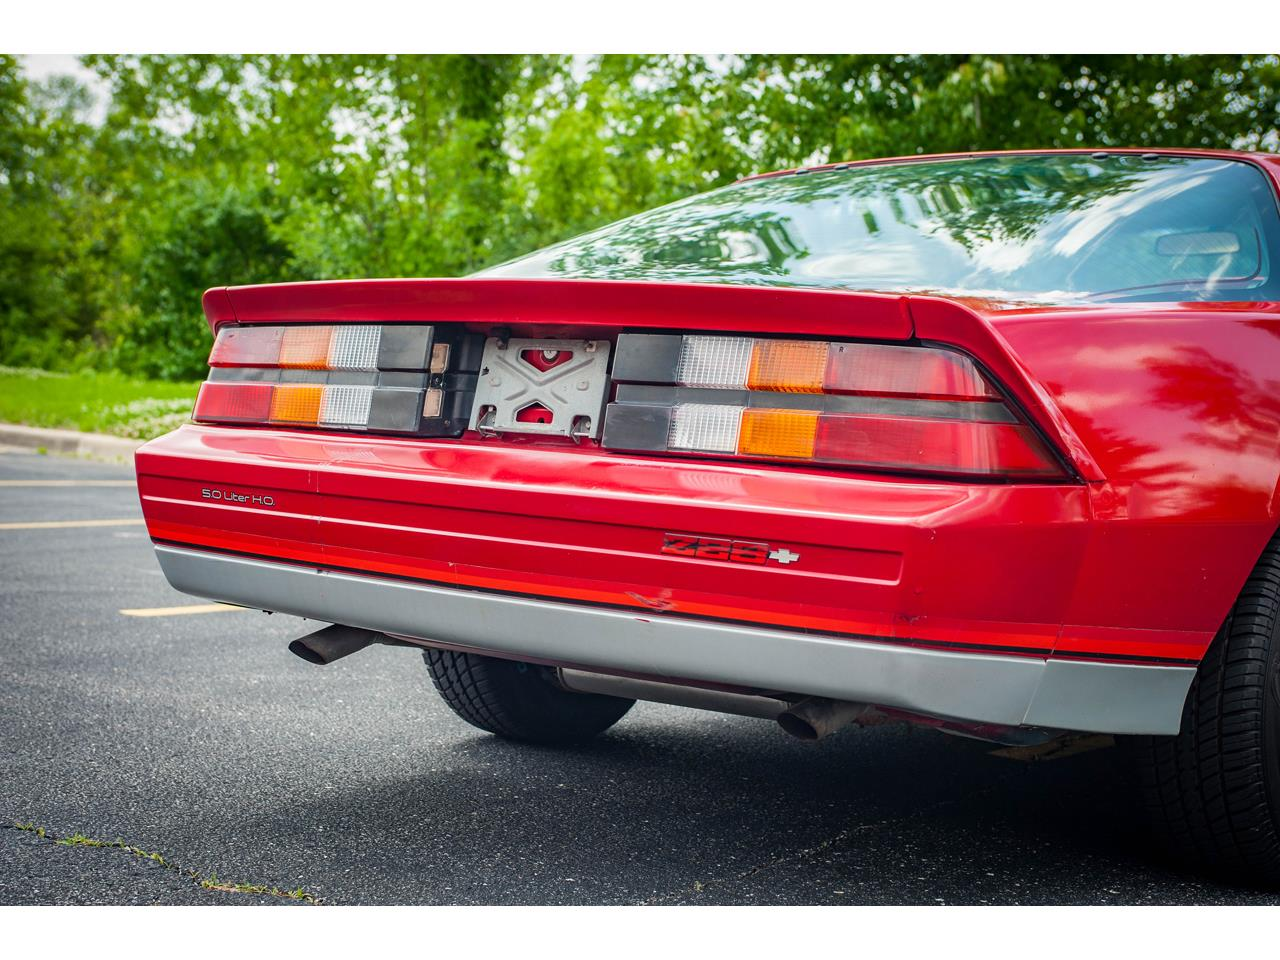 Large Picture of 1984 Camaro located in O'Fallon Illinois - $9,500.00 Offered by Gateway Classic Cars - St. Louis - QB9Y